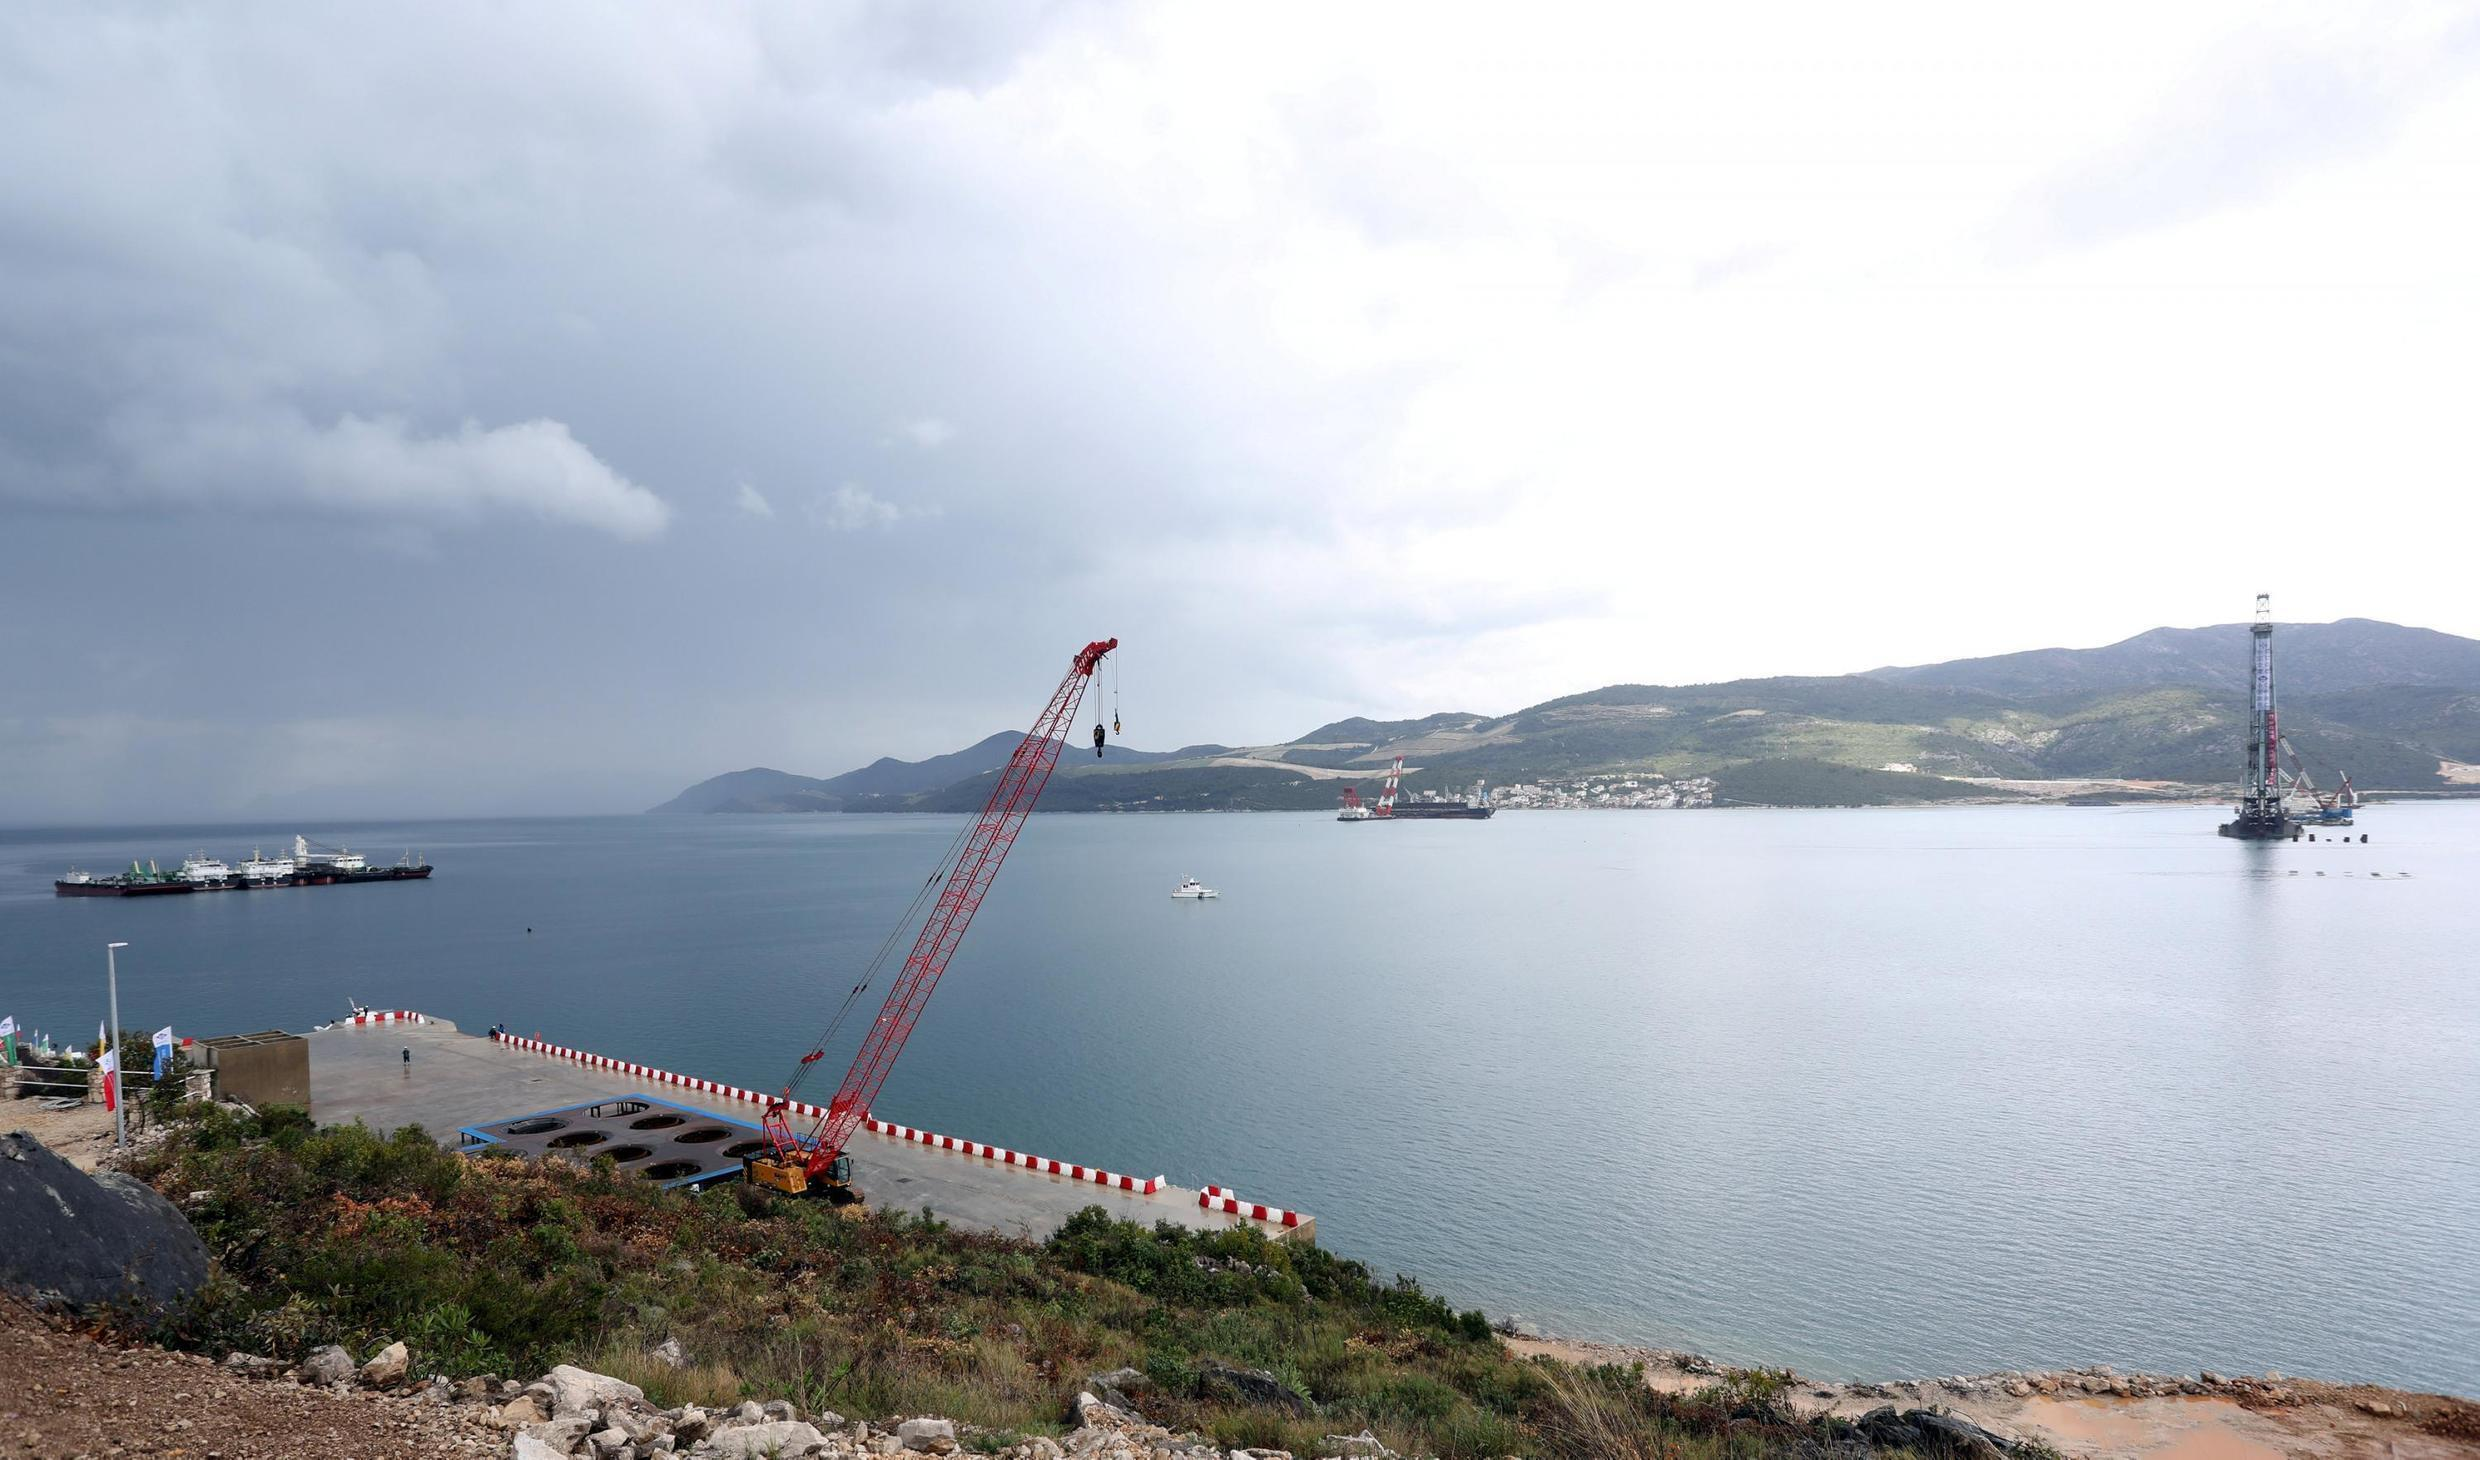 Vue générale de la construction du pont de Peljesac par la China Road and Bridge Corporation  reliera la région de Dubrovnik au reste de la Croatie en enjambant la seule zone côtière contrôlée par la Bosnie.